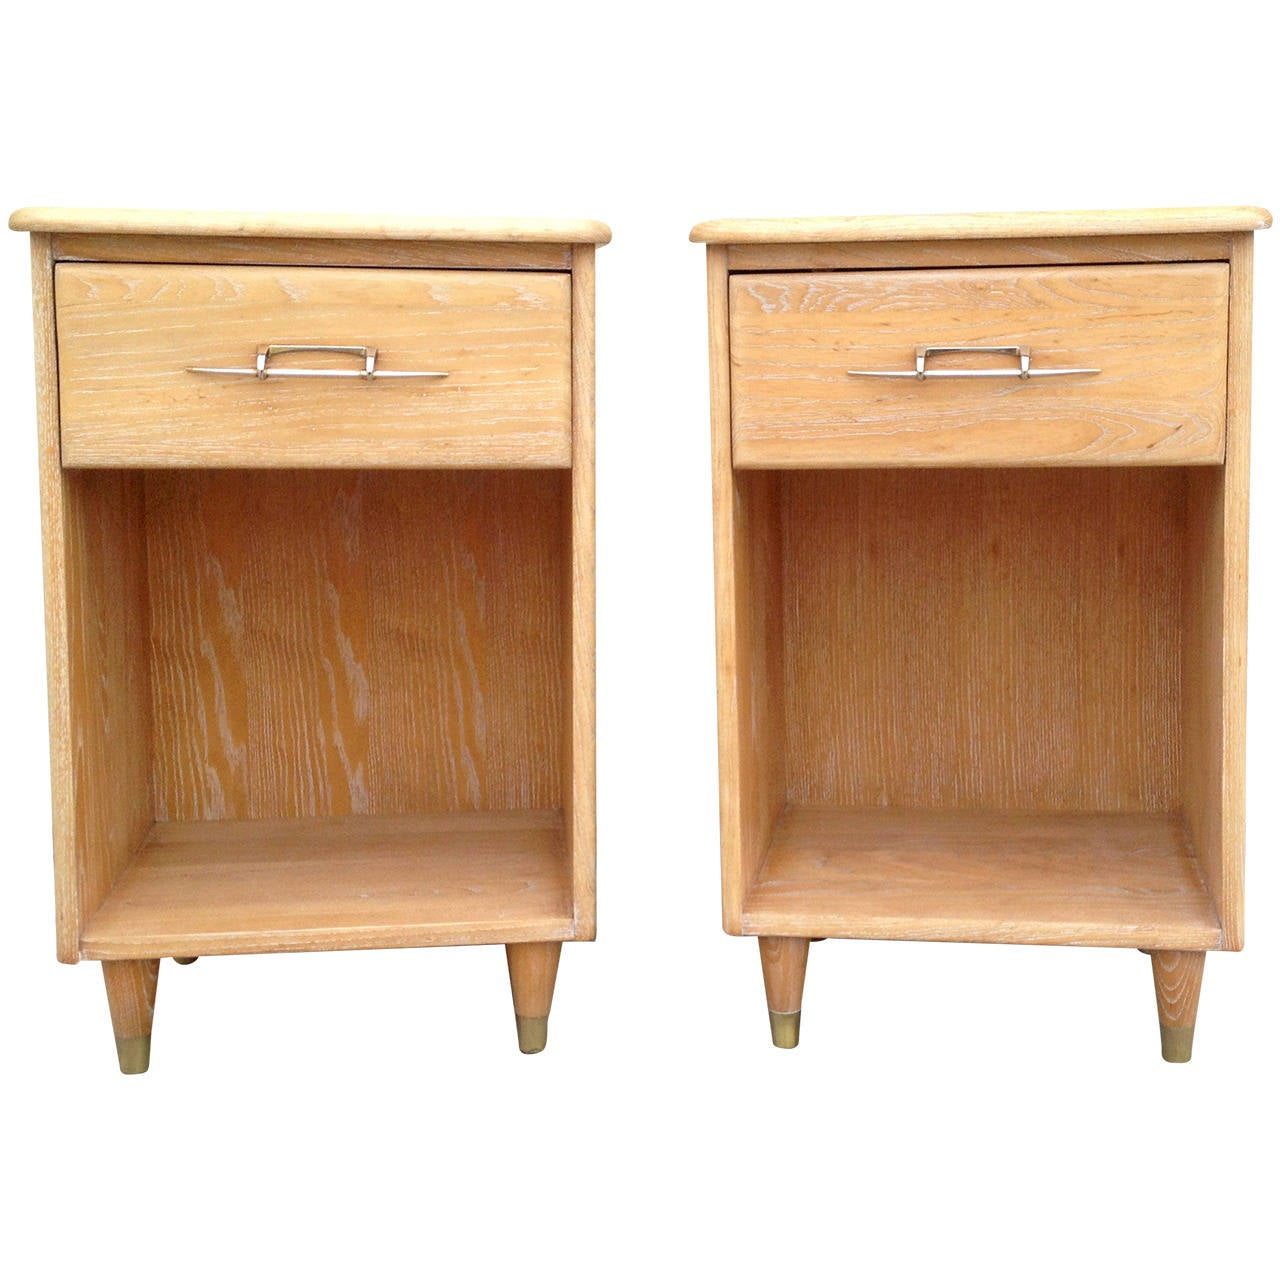 Pair of 1950s Nightstands with Subtle Cerused Finish